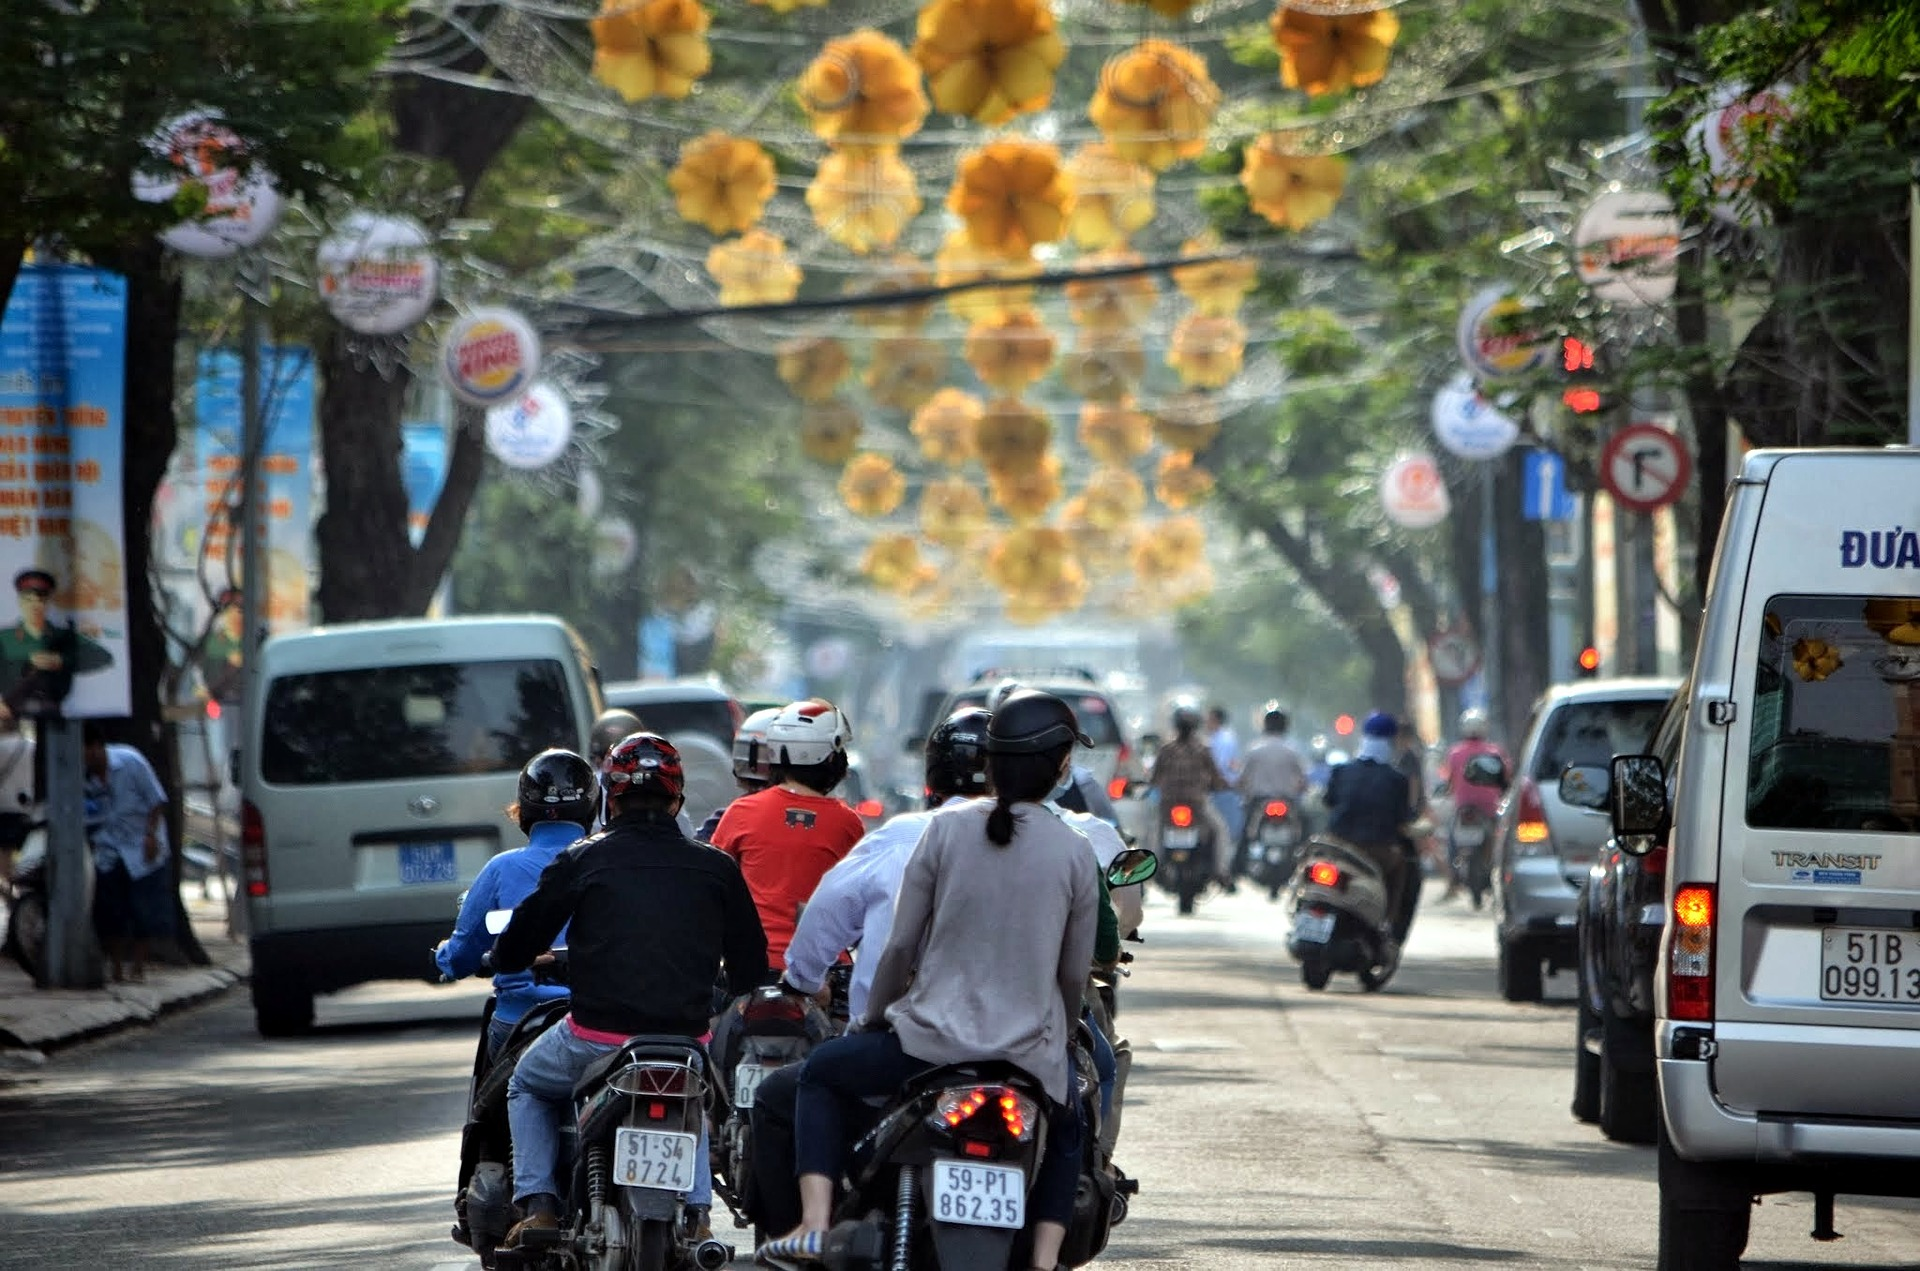 Ho Chi Minh City | DigiNo | 10 Best Locations For Digital Nomads